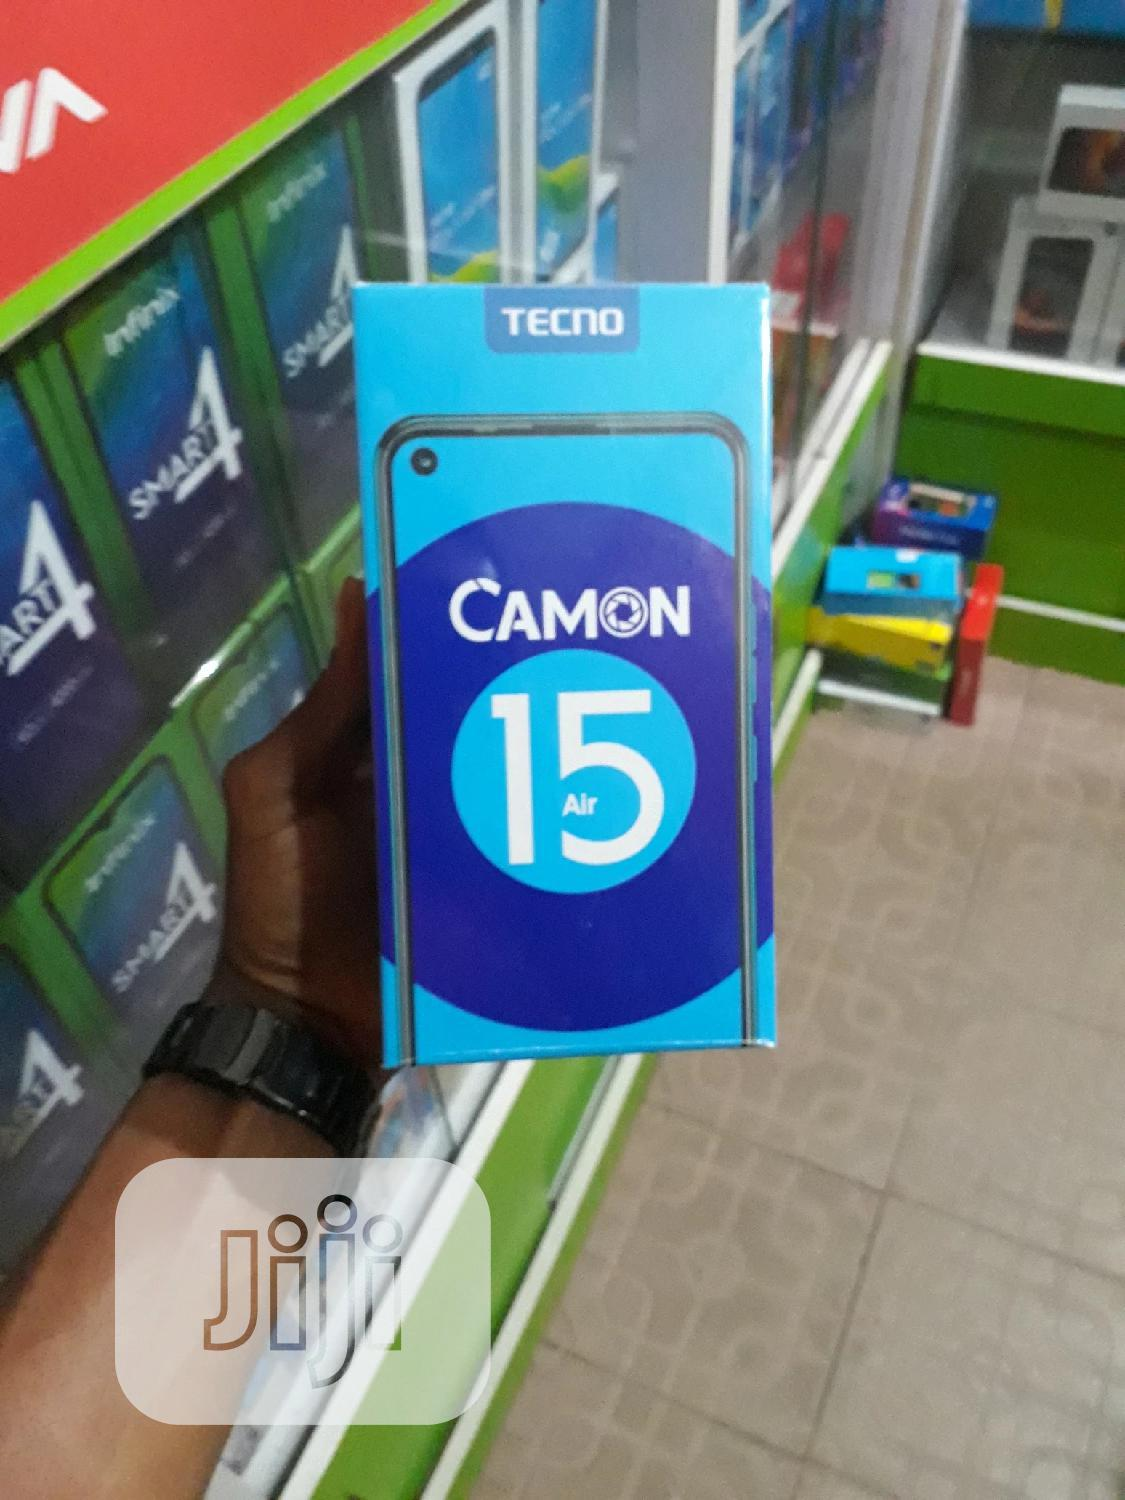 New Tecno Camon 15 Air 64 GB | Mobile Phones for sale in Ikeja, Lagos State, Nigeria